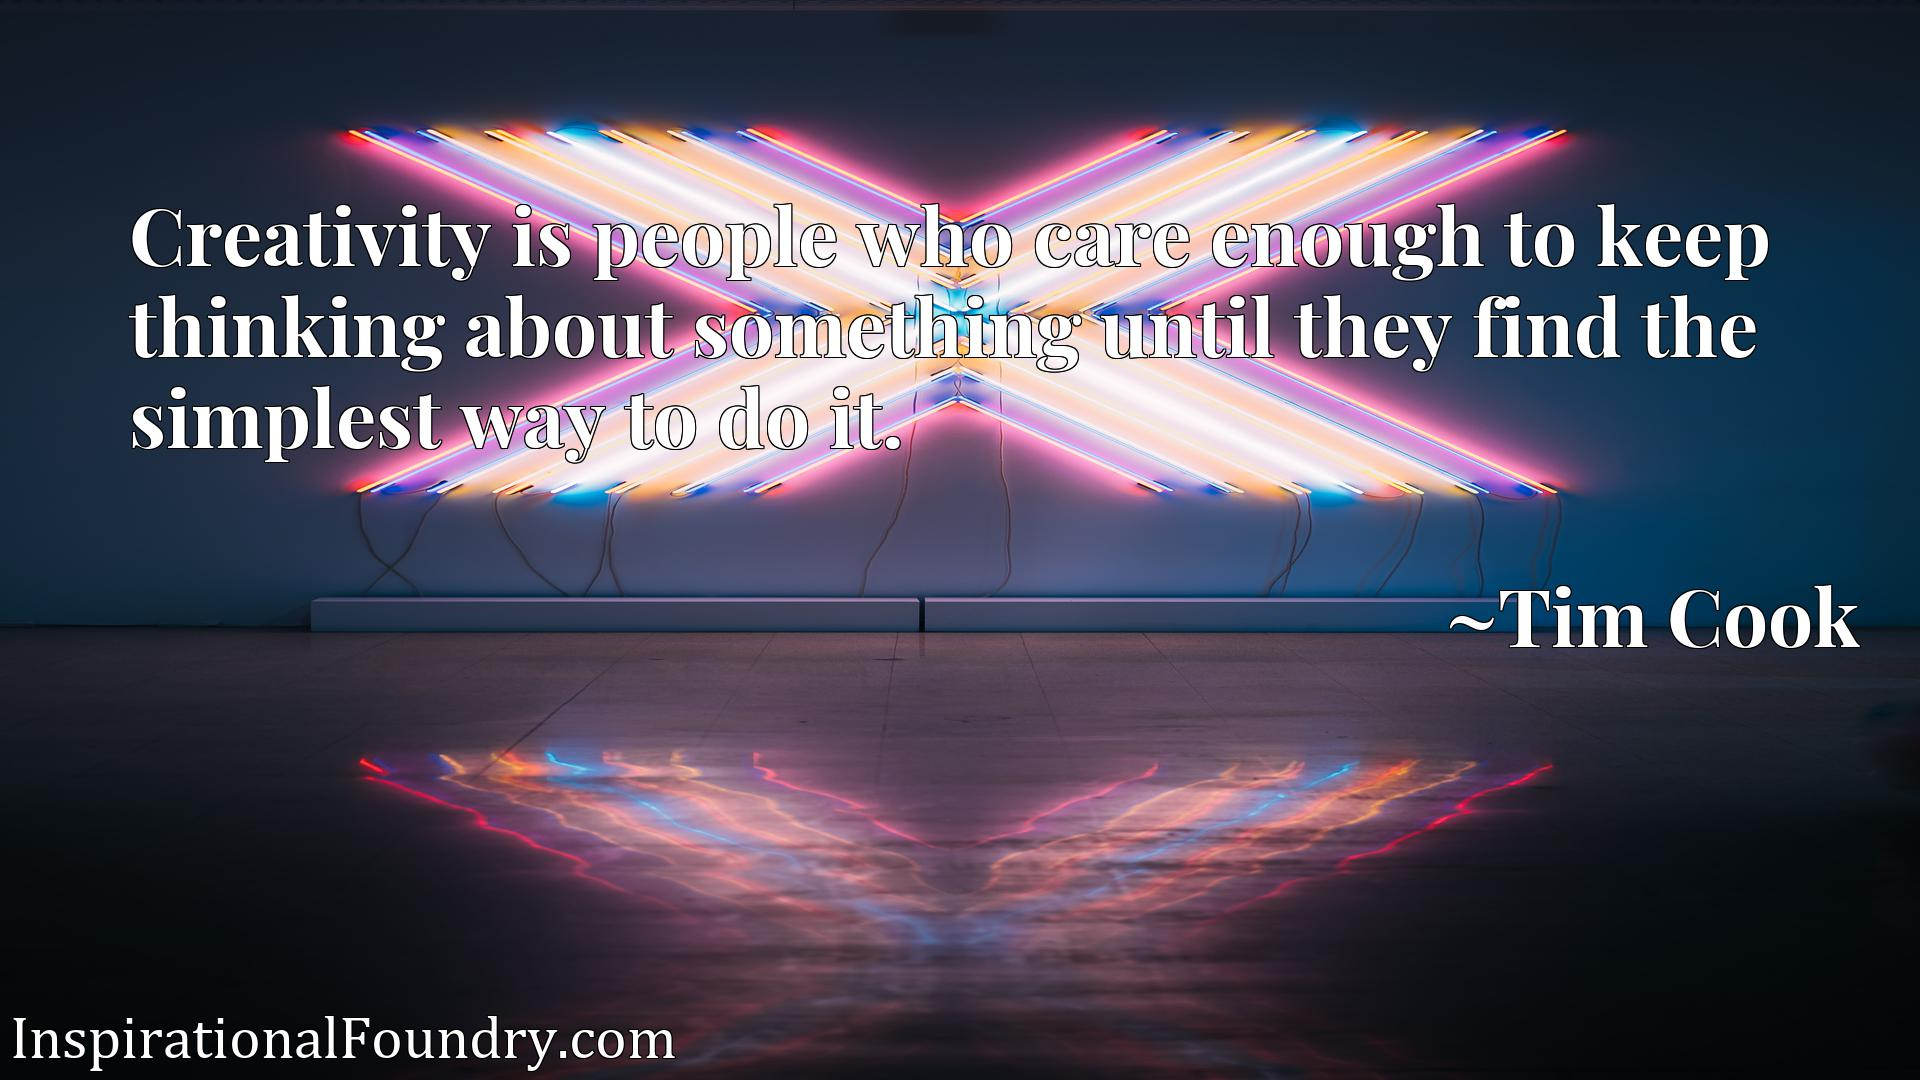 Creativity is people who care enough to keep thinking about something until they find the simplest way to do it.